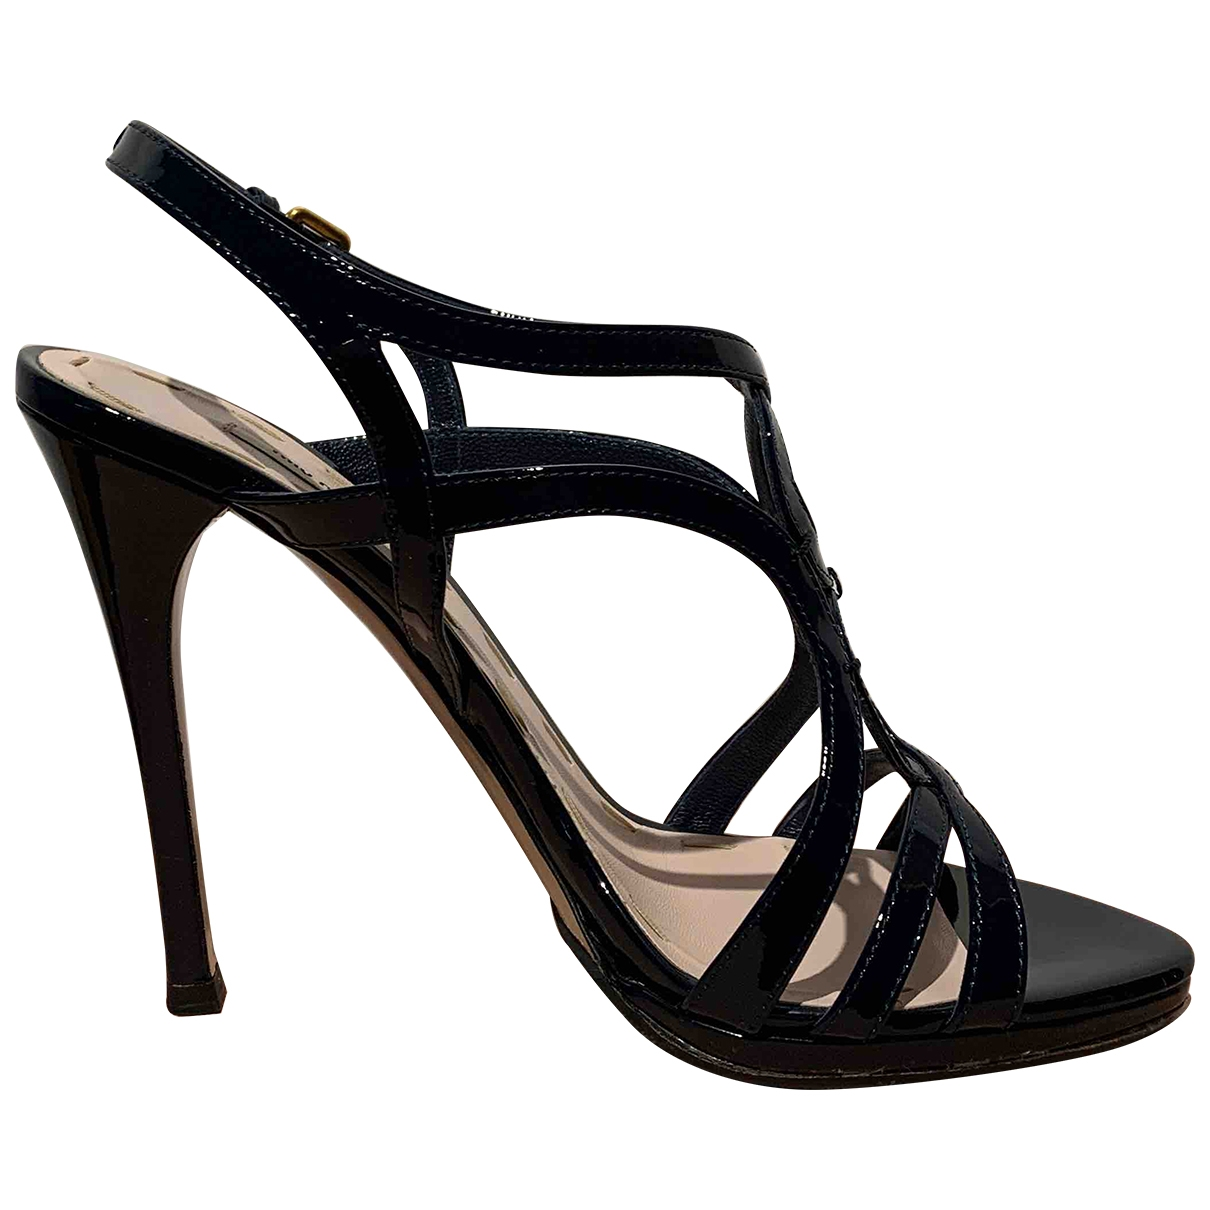 Miu Miu \N Navy Patent leather Sandals for Women 37 EU